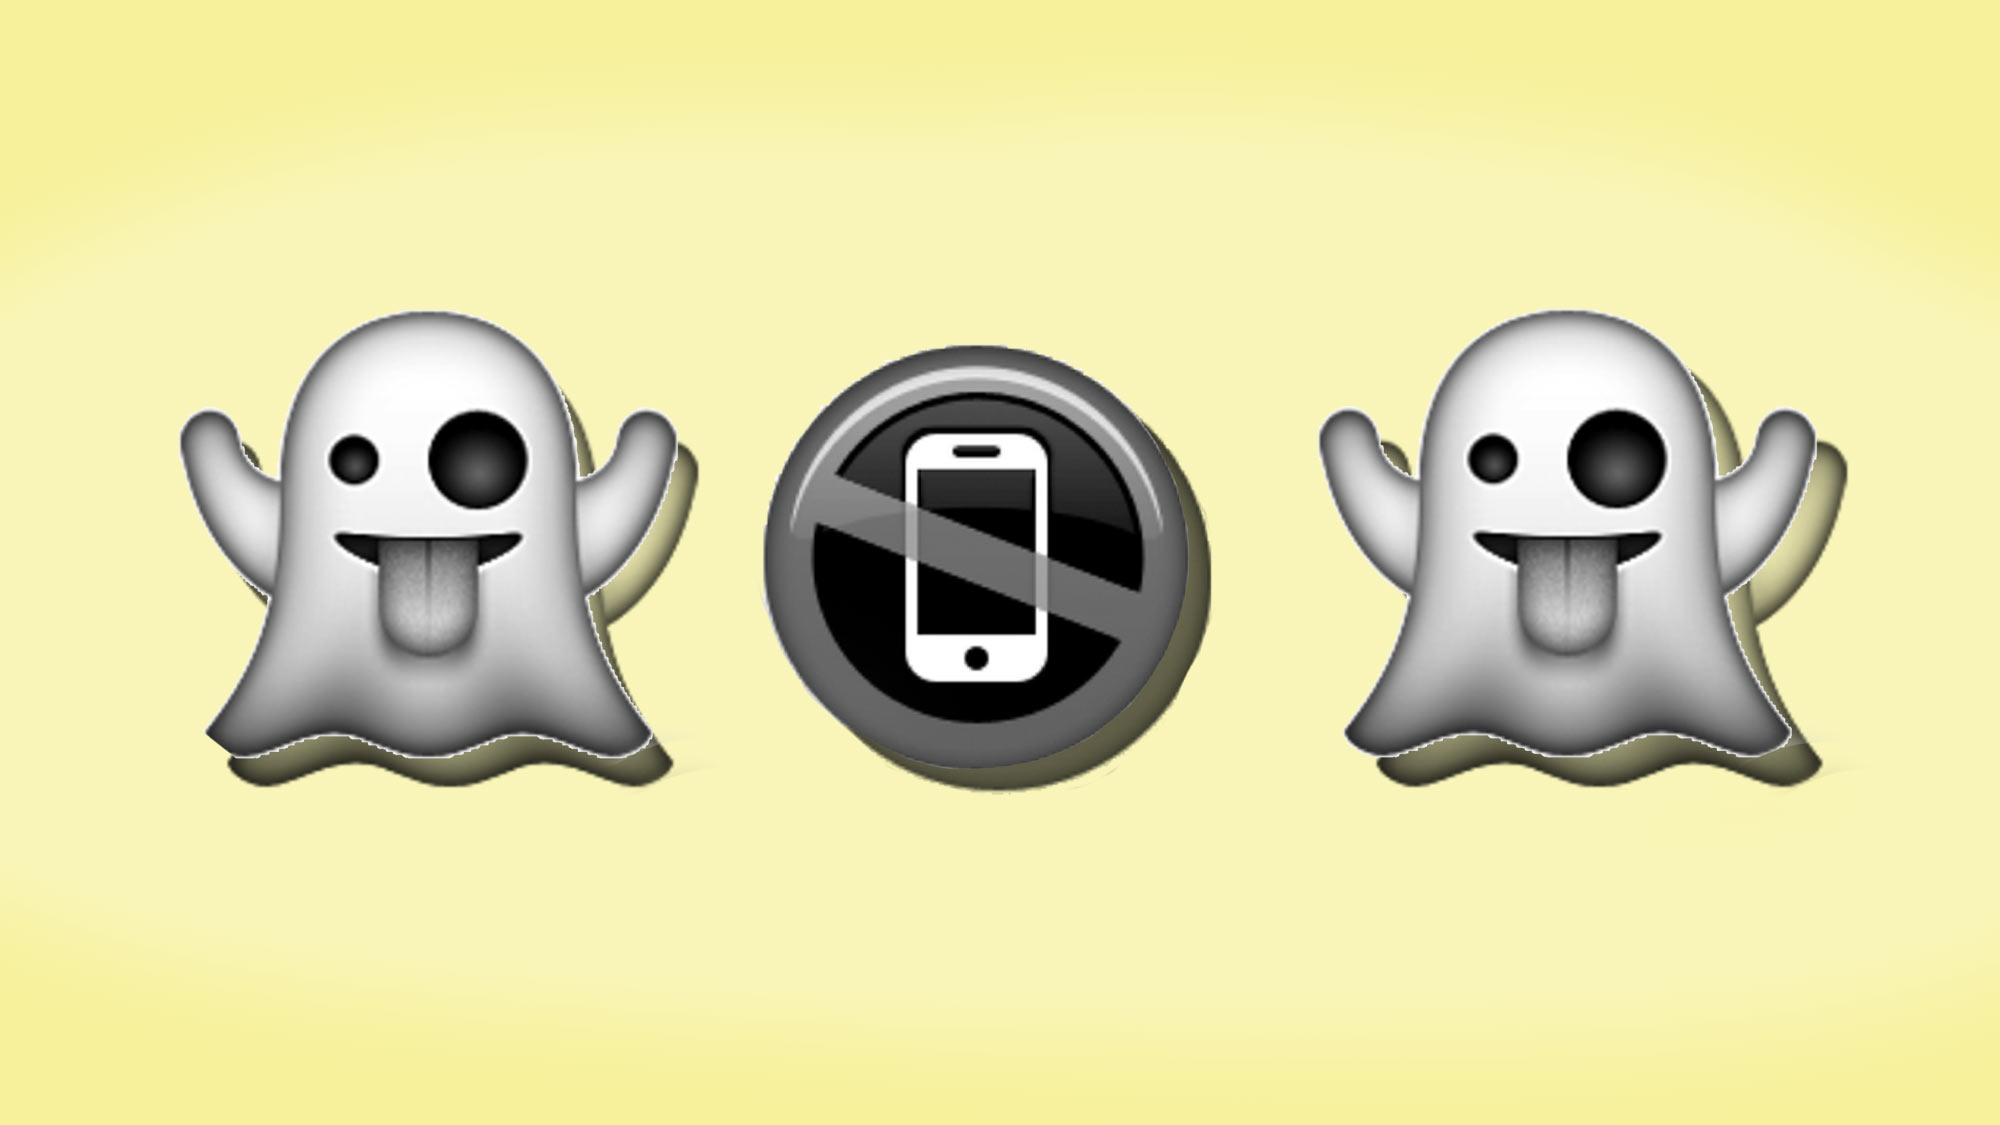 Ghosting - What is it?